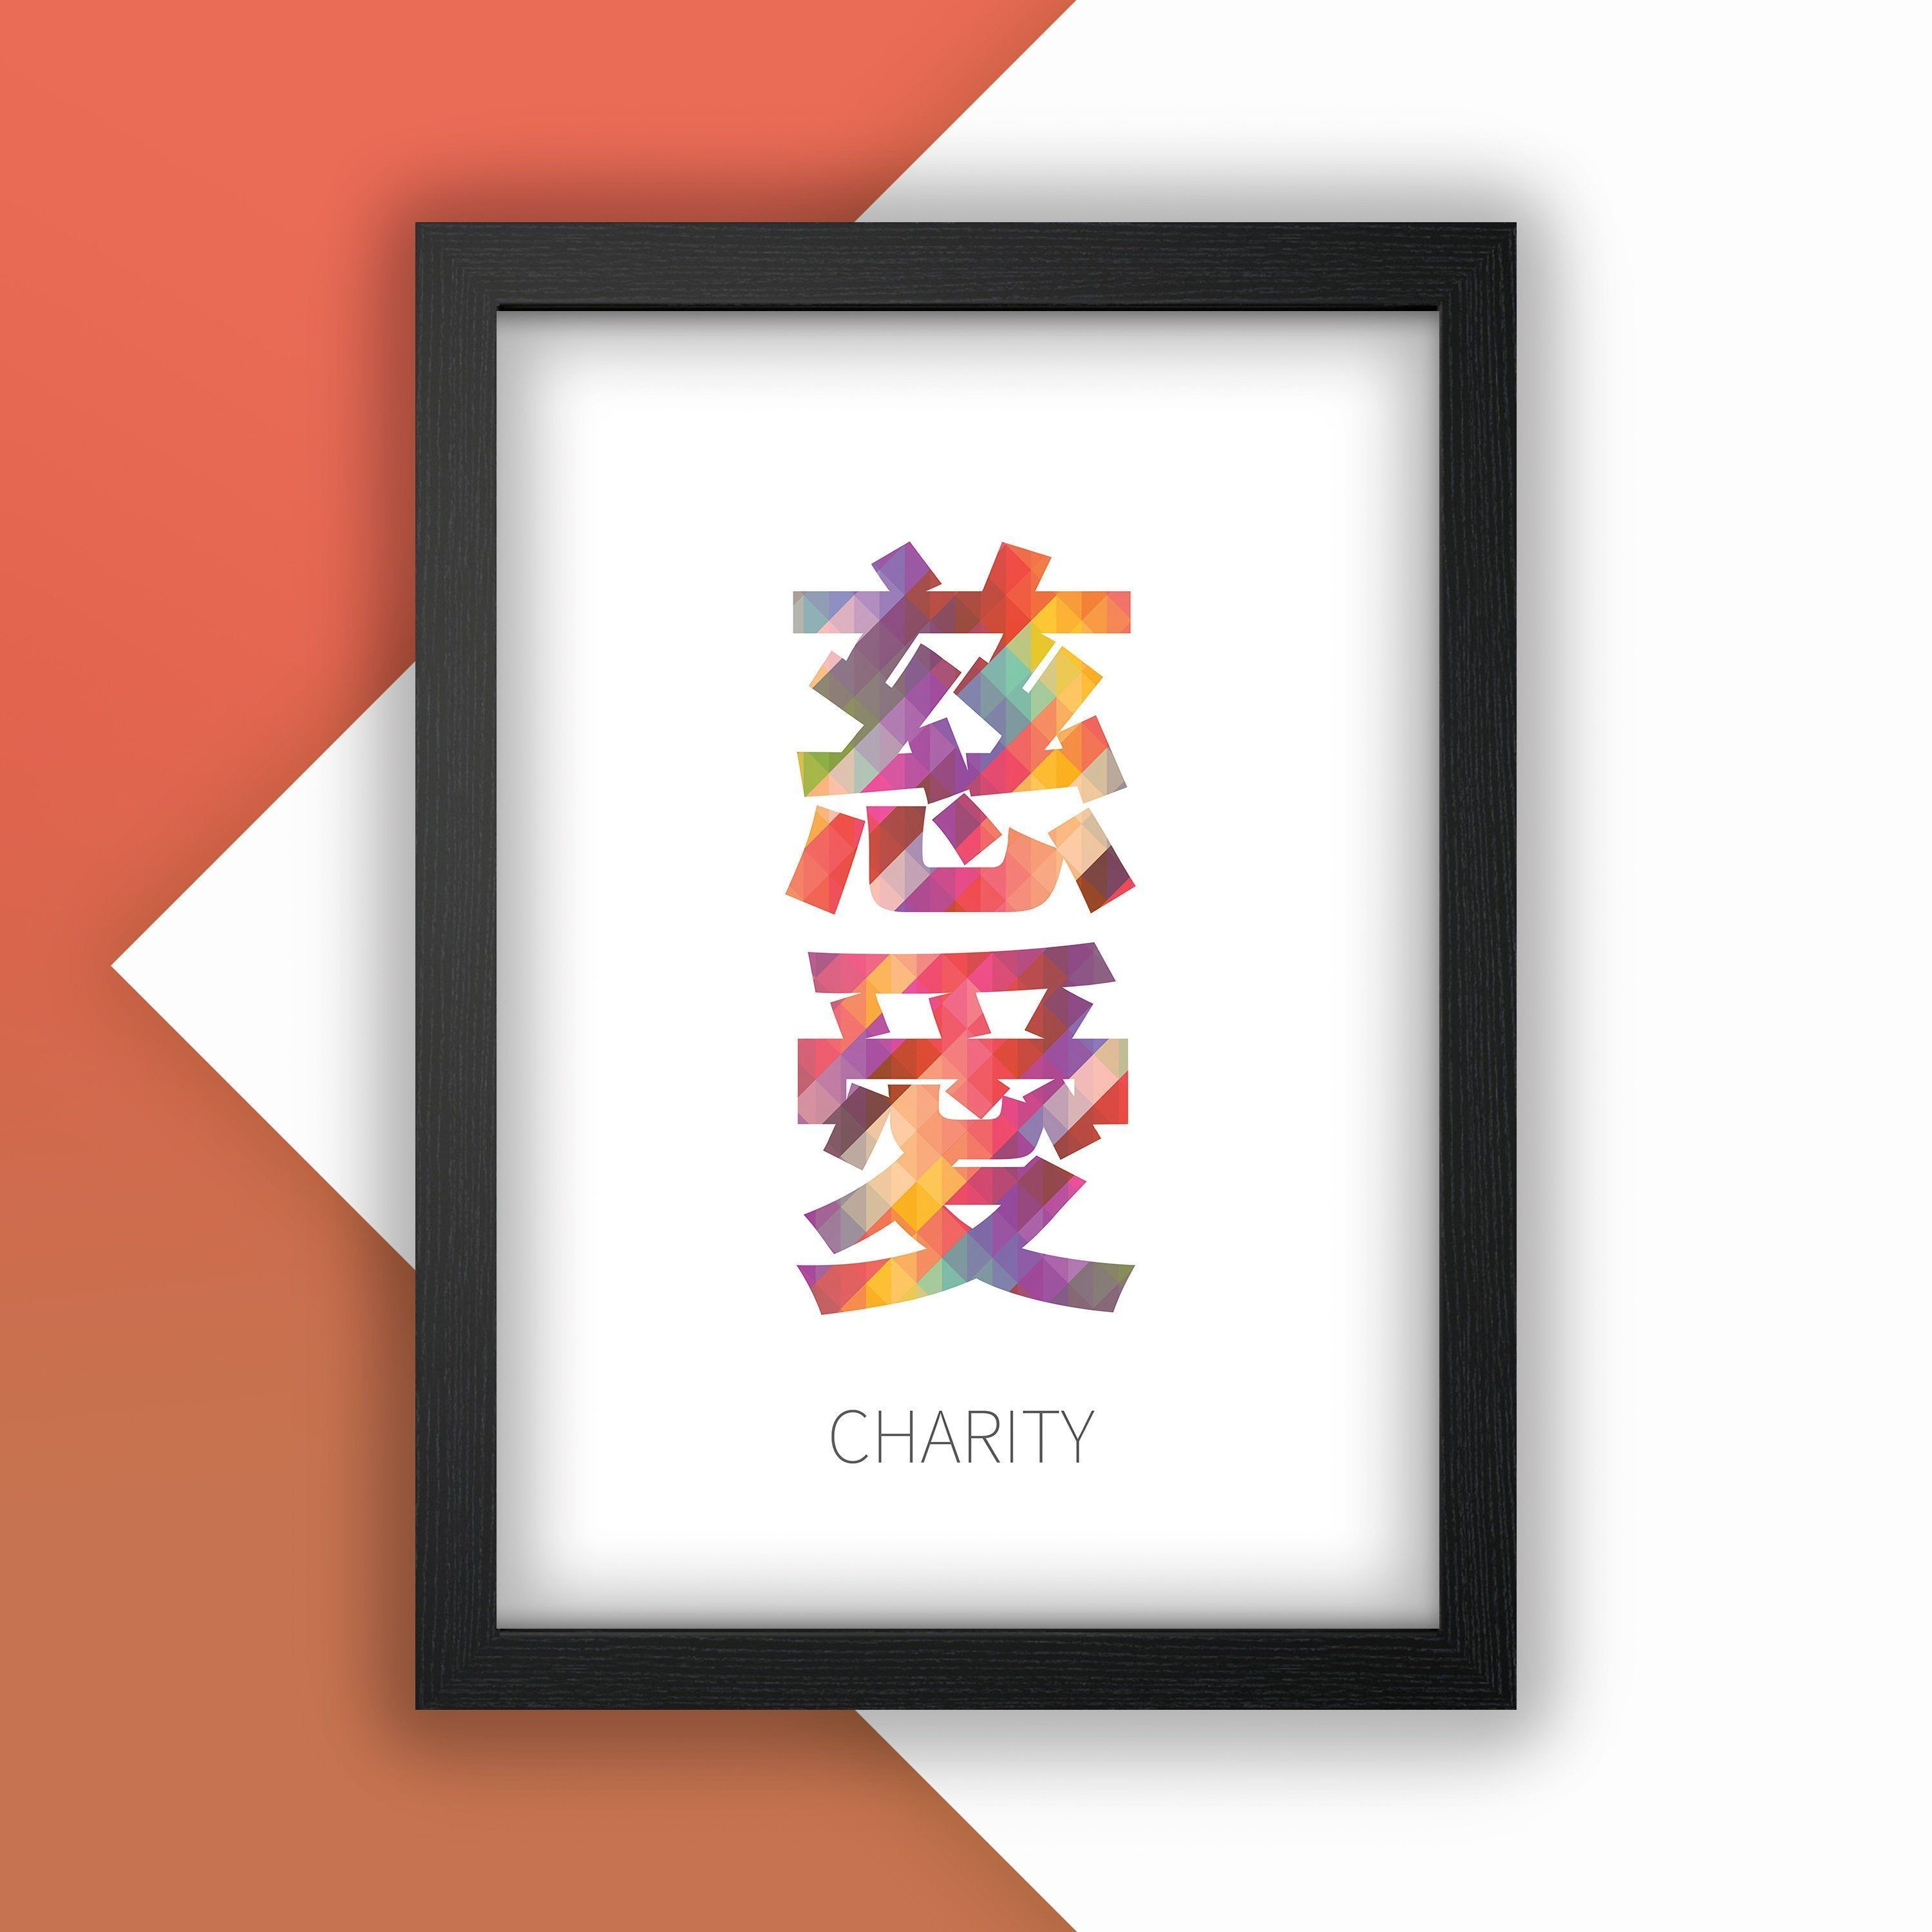 CHARITY Poster | Illustration Poster | Chinese Typography | Minimalistic poster | Wall Art | Art Print | Poster | Design | Typography #chinesetypography CHARITY Poster | Illustration Poster | Chinese Typography | Minimalistic poster | Wall Art | Art Print | Poster | Design | Typography #chinesetypography CHARITY Poster | Illustration Poster | Chinese Typography | Minimalistic poster | Wall Art | Art Print | Poster | Design | Typography #chinesetypography CHARITY Poster | Illustration Poster | Ch #chinesetypography